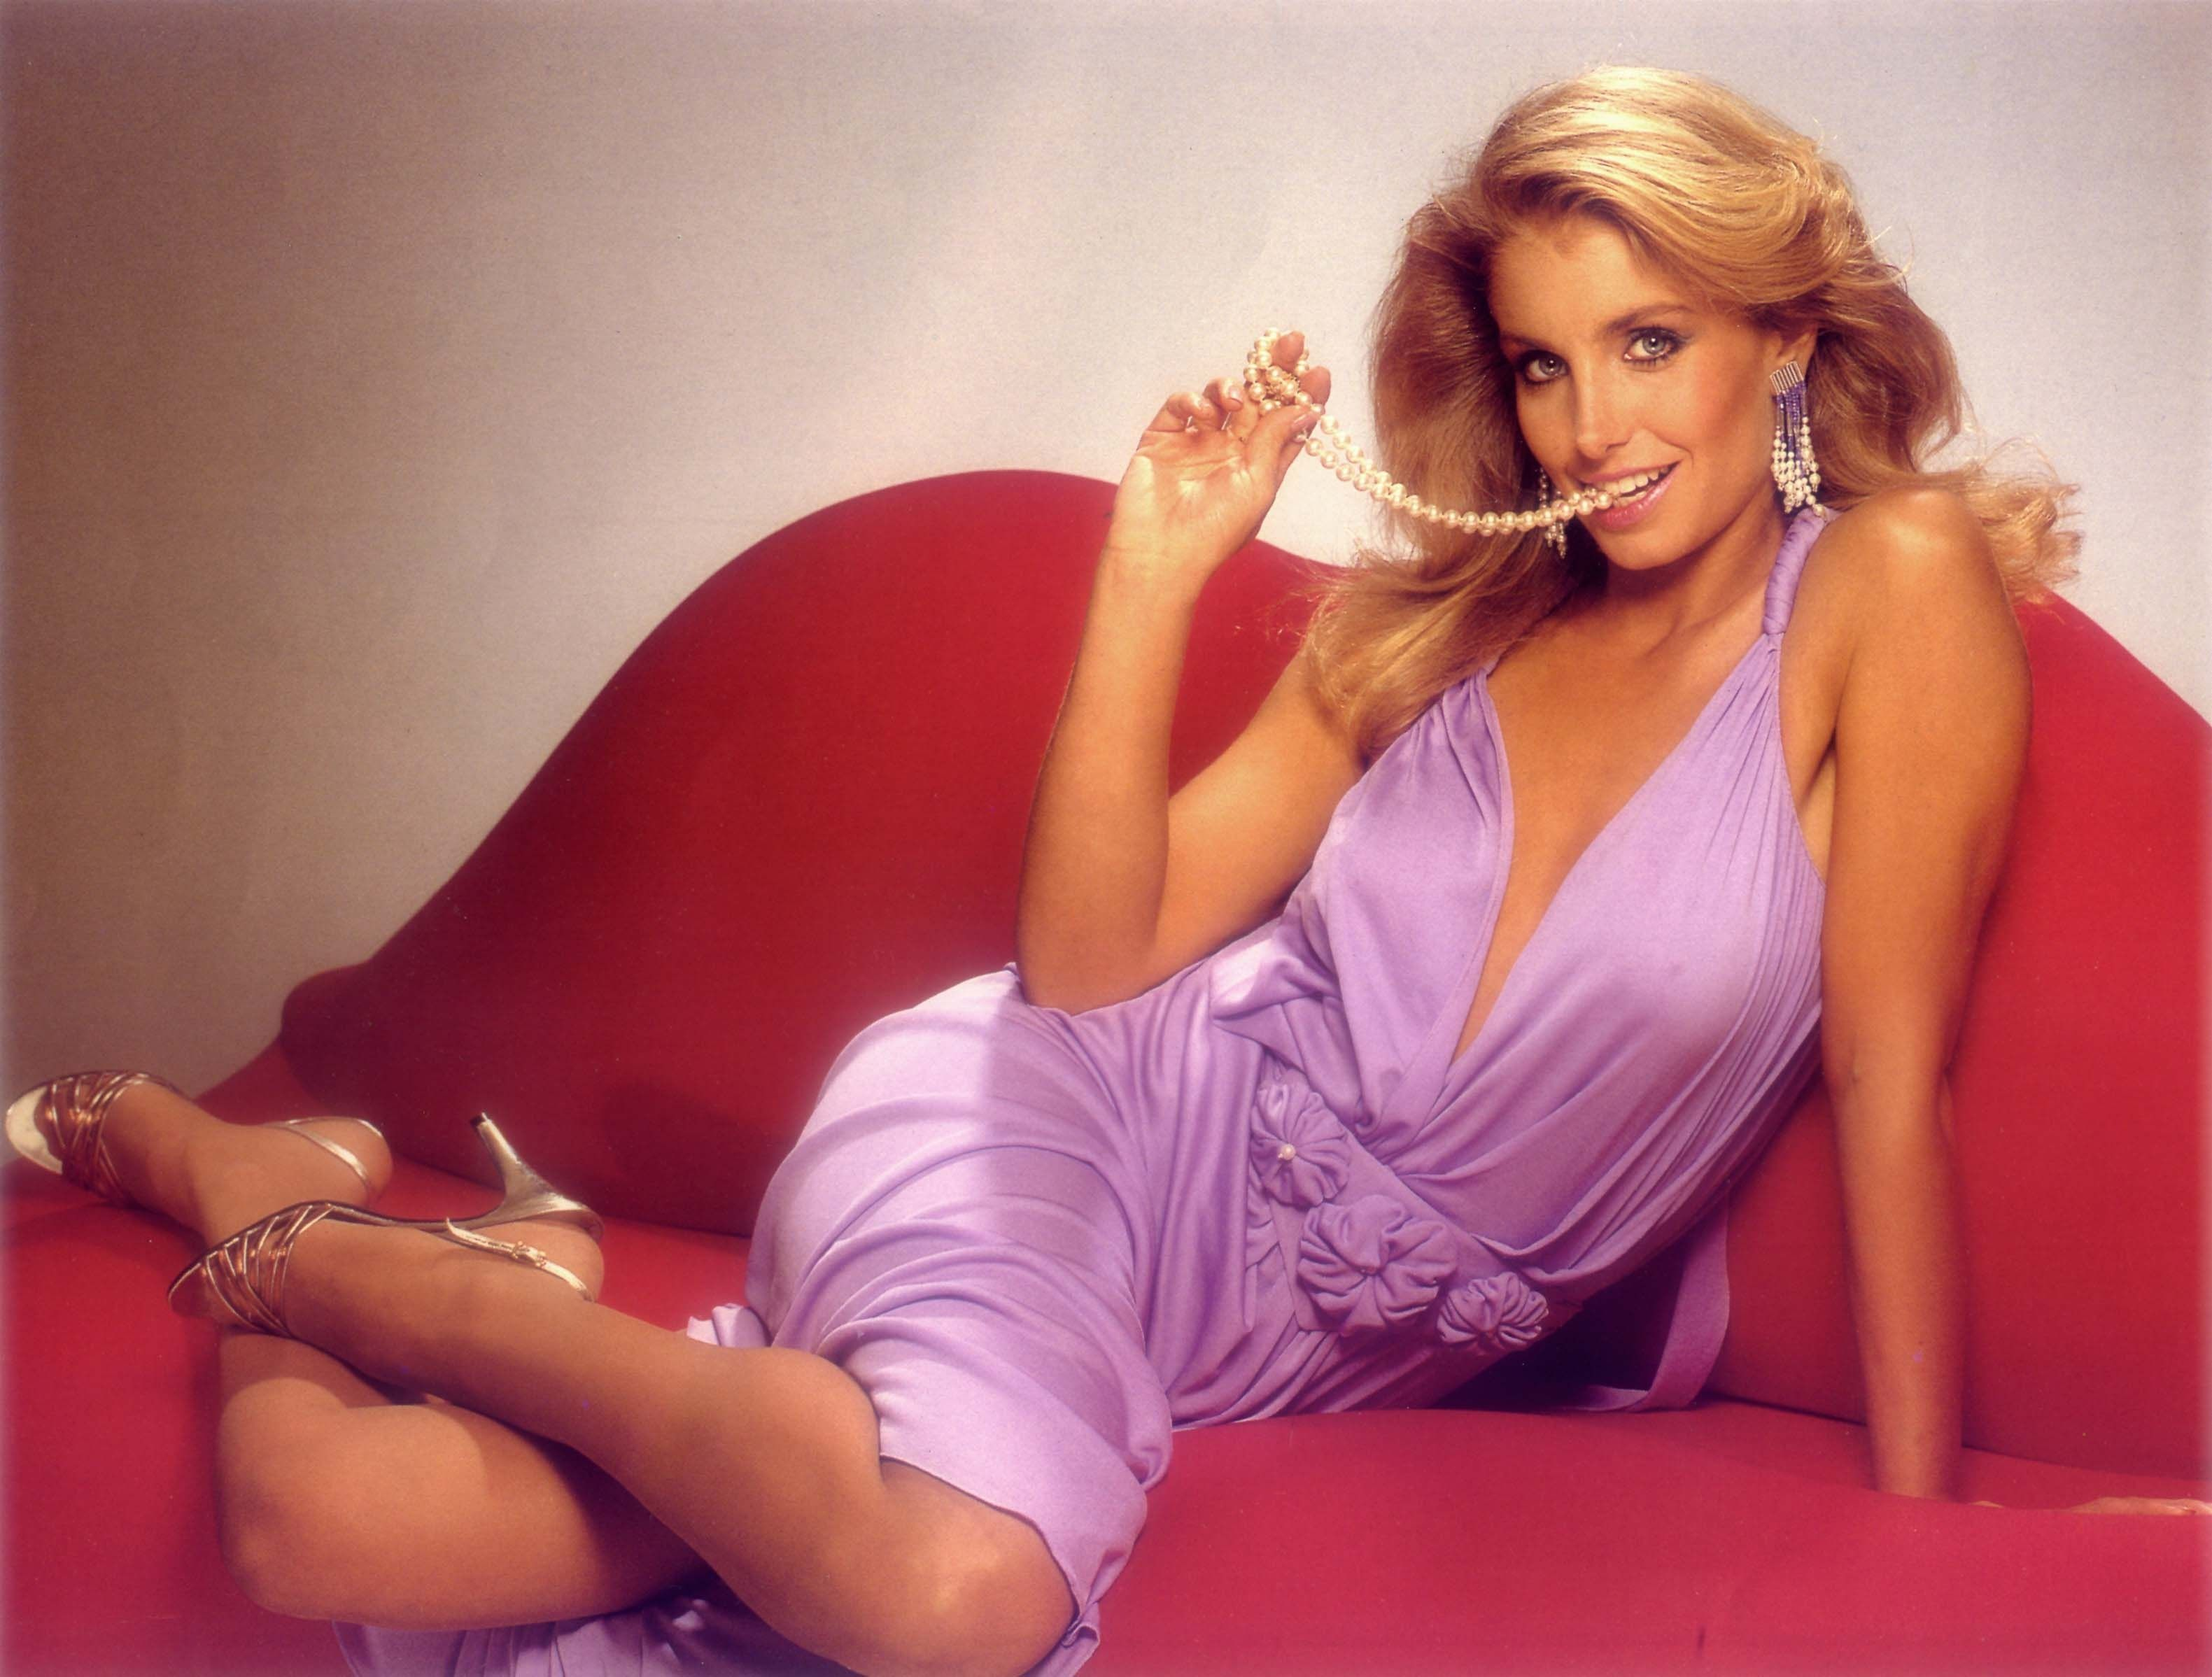 heather thomas hotheather thomas bio, heather thomas wikipedia, heather thomas vs heather locklear, heather thomas facebook, heather thomas filmography, heather thomas instagram, heather thomas nick diaz, heather thomas, heather thomas poster, heather thomas 2015, heather thomas net worth, heather thomas now, heather thomas hot, heather thomas age, heather thomas zapped, heather thomas heute, heather thomas bikini, heather thomas playboy